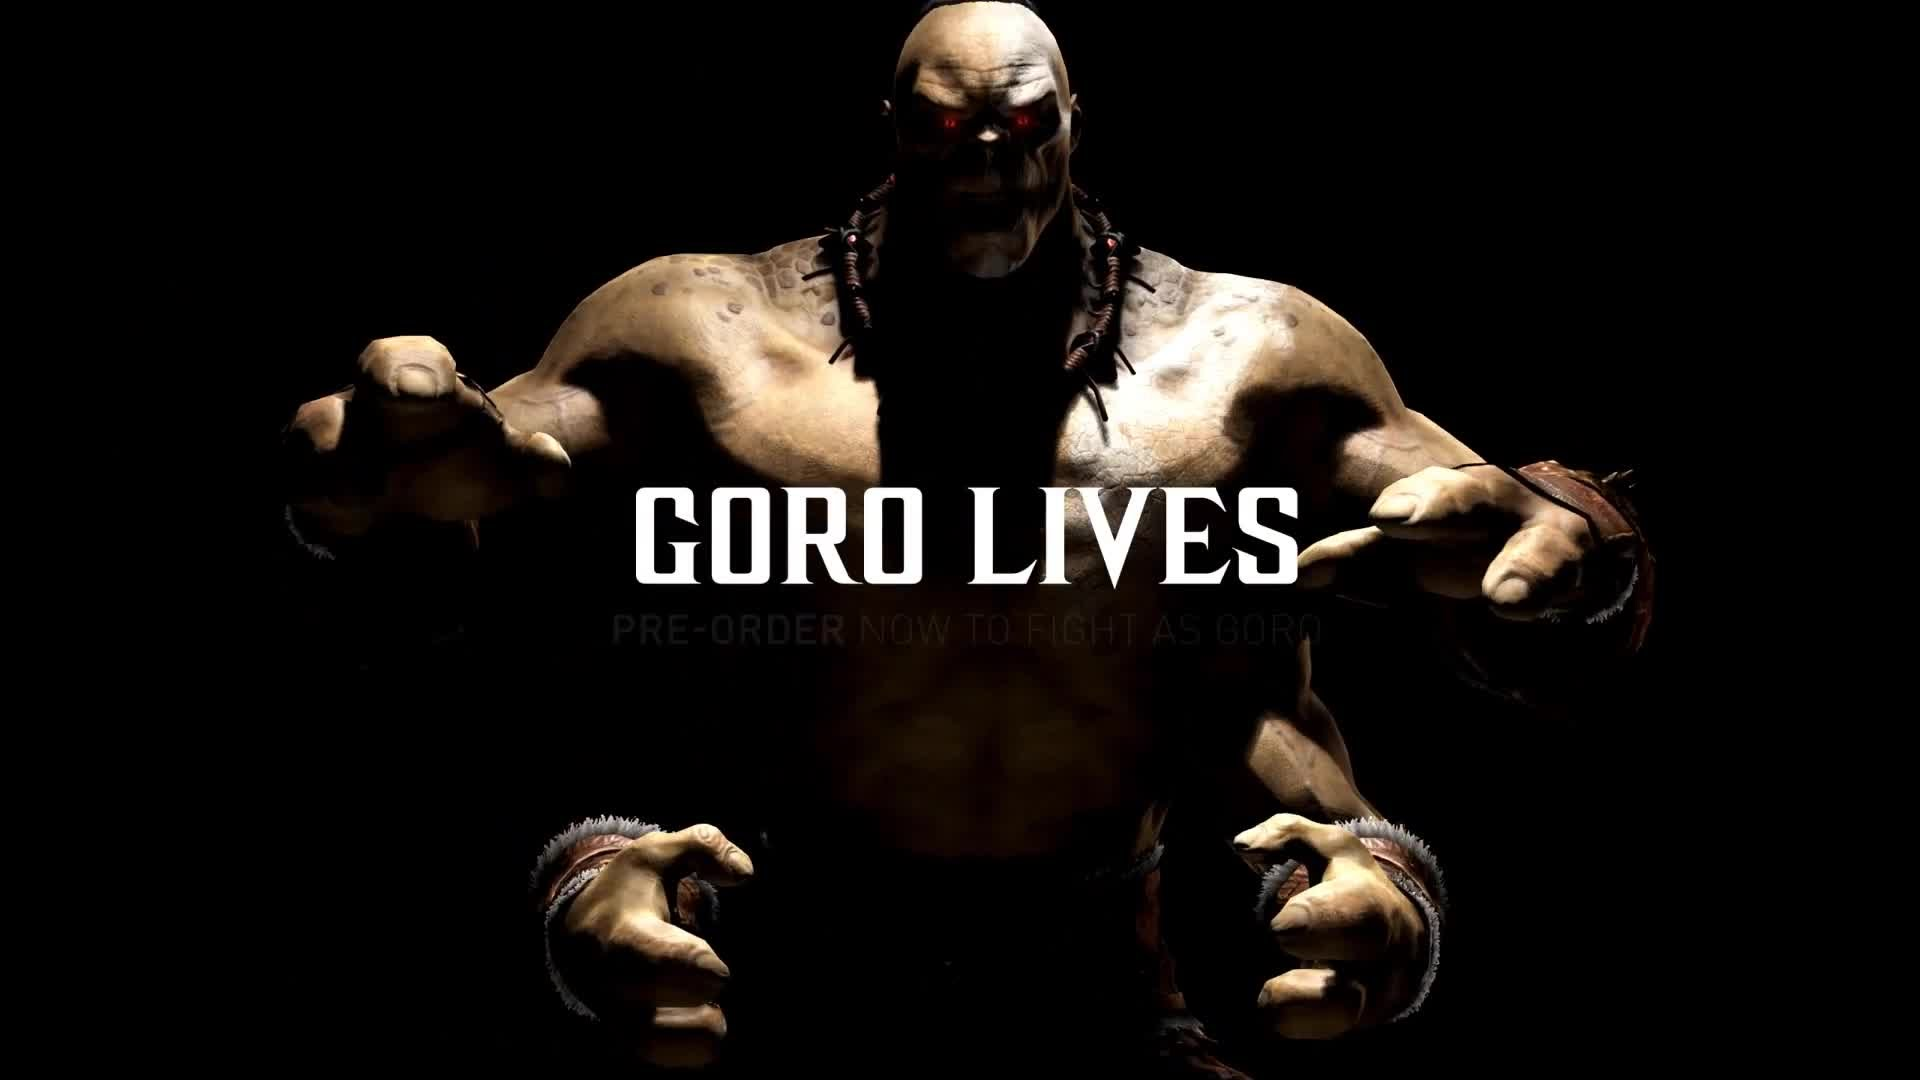 Goro Smashes Heads into Shoulders in This New Mortal Kombat